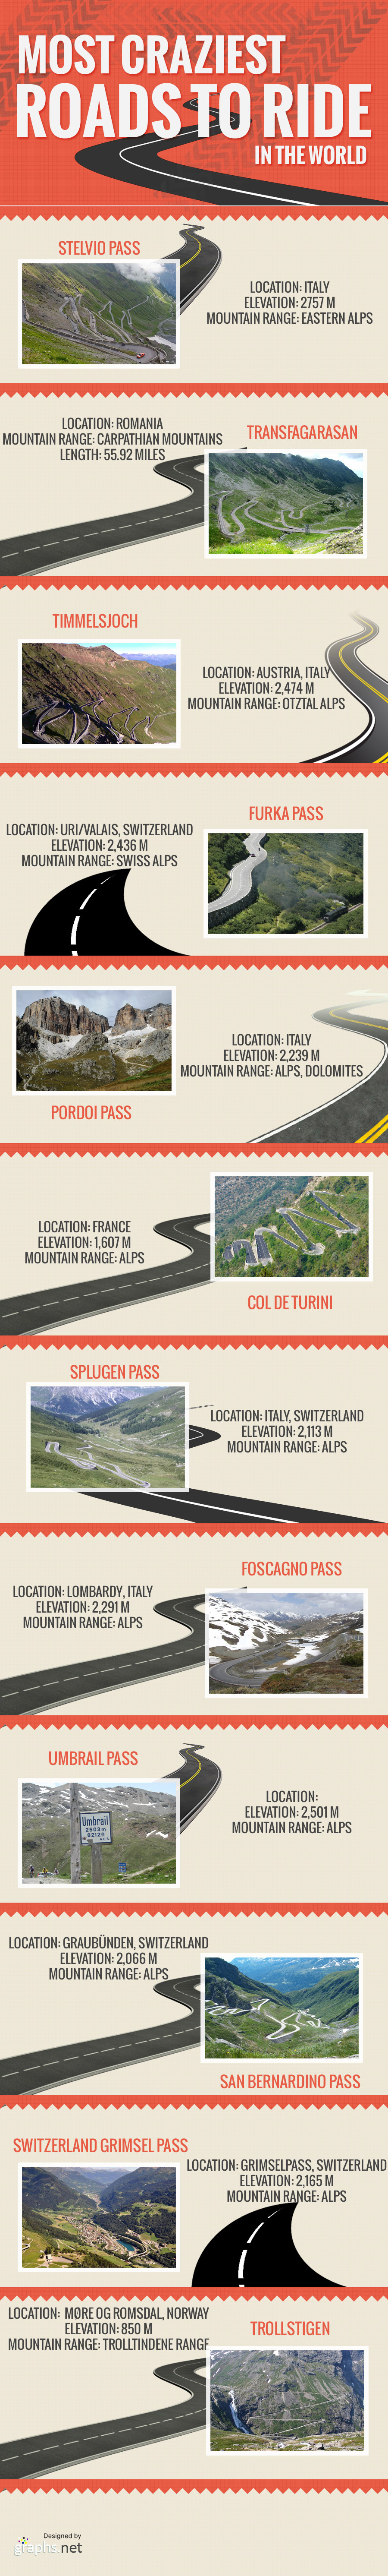 Craziest Roads to Ride in the World